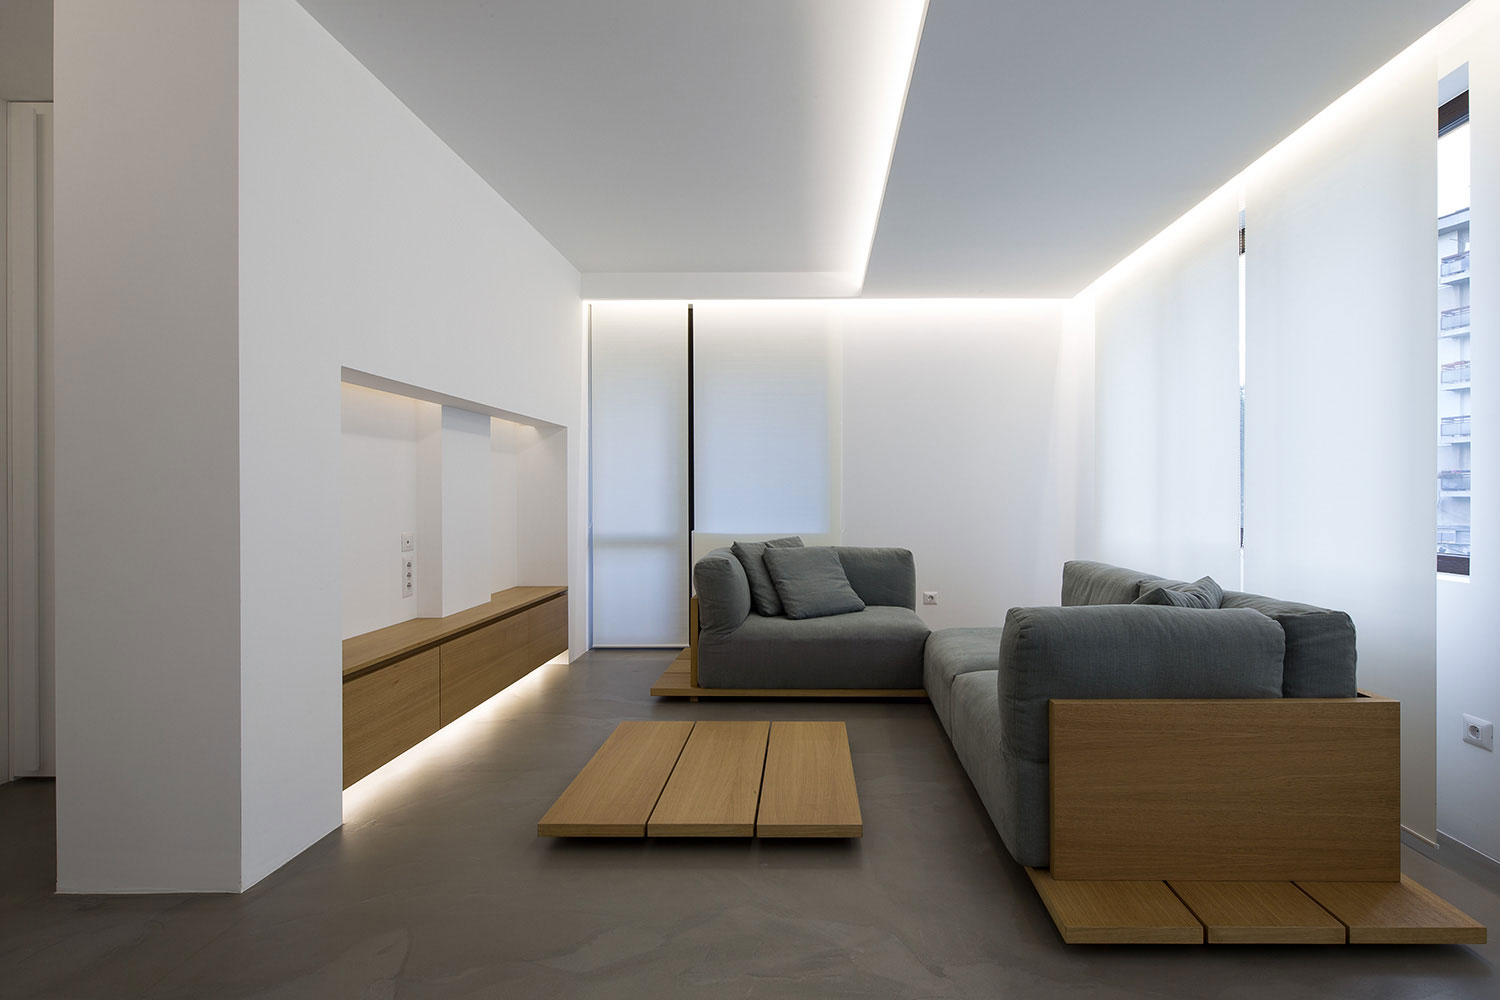 Elia nedkov designs a minimalist interior in sofia bulgaria for Minimalist house design